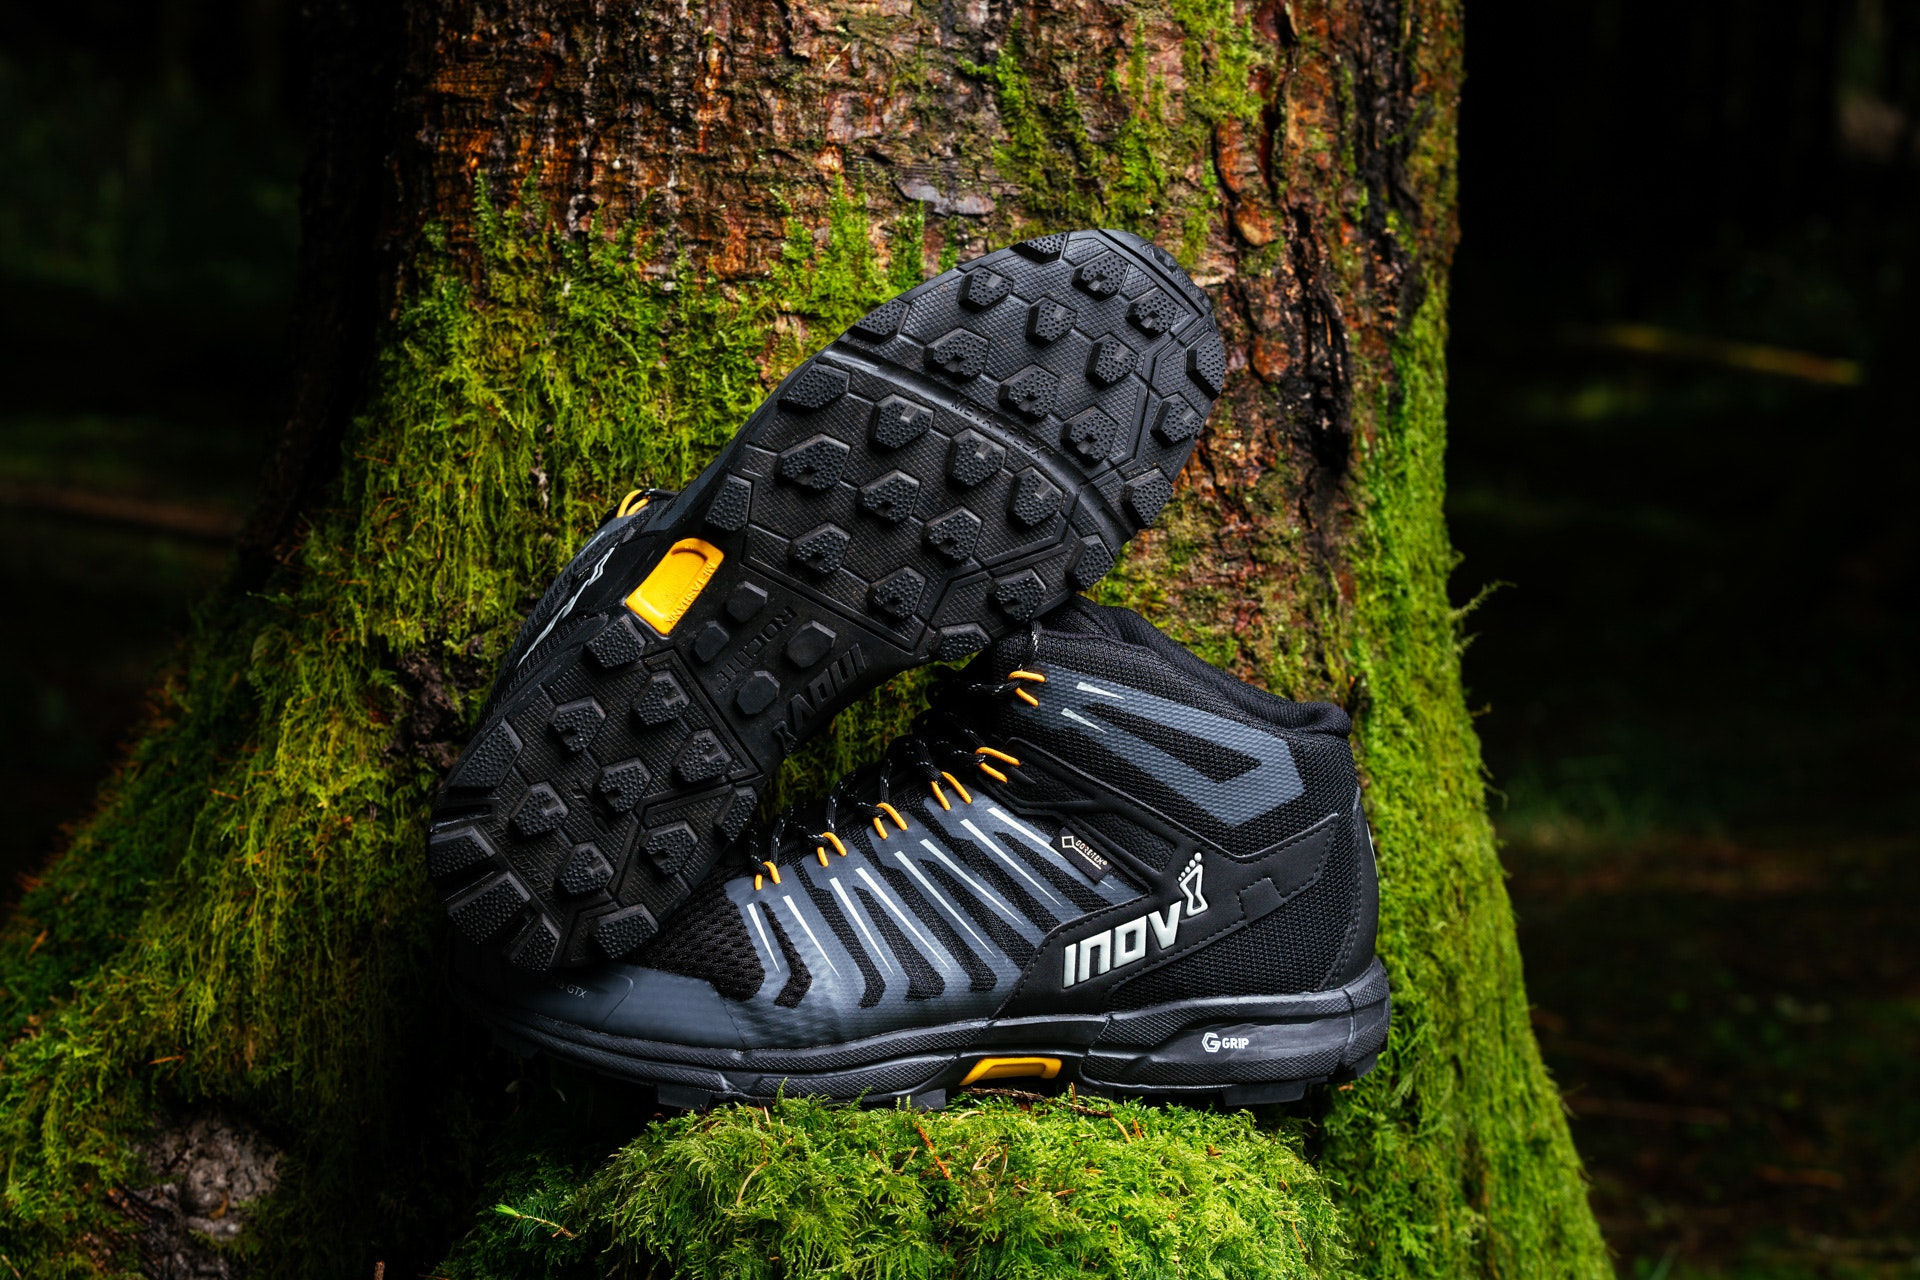 Inov-8 Mens Roclite G 345 GTX Mid Waterproof Lightweight Hiking Running Boots